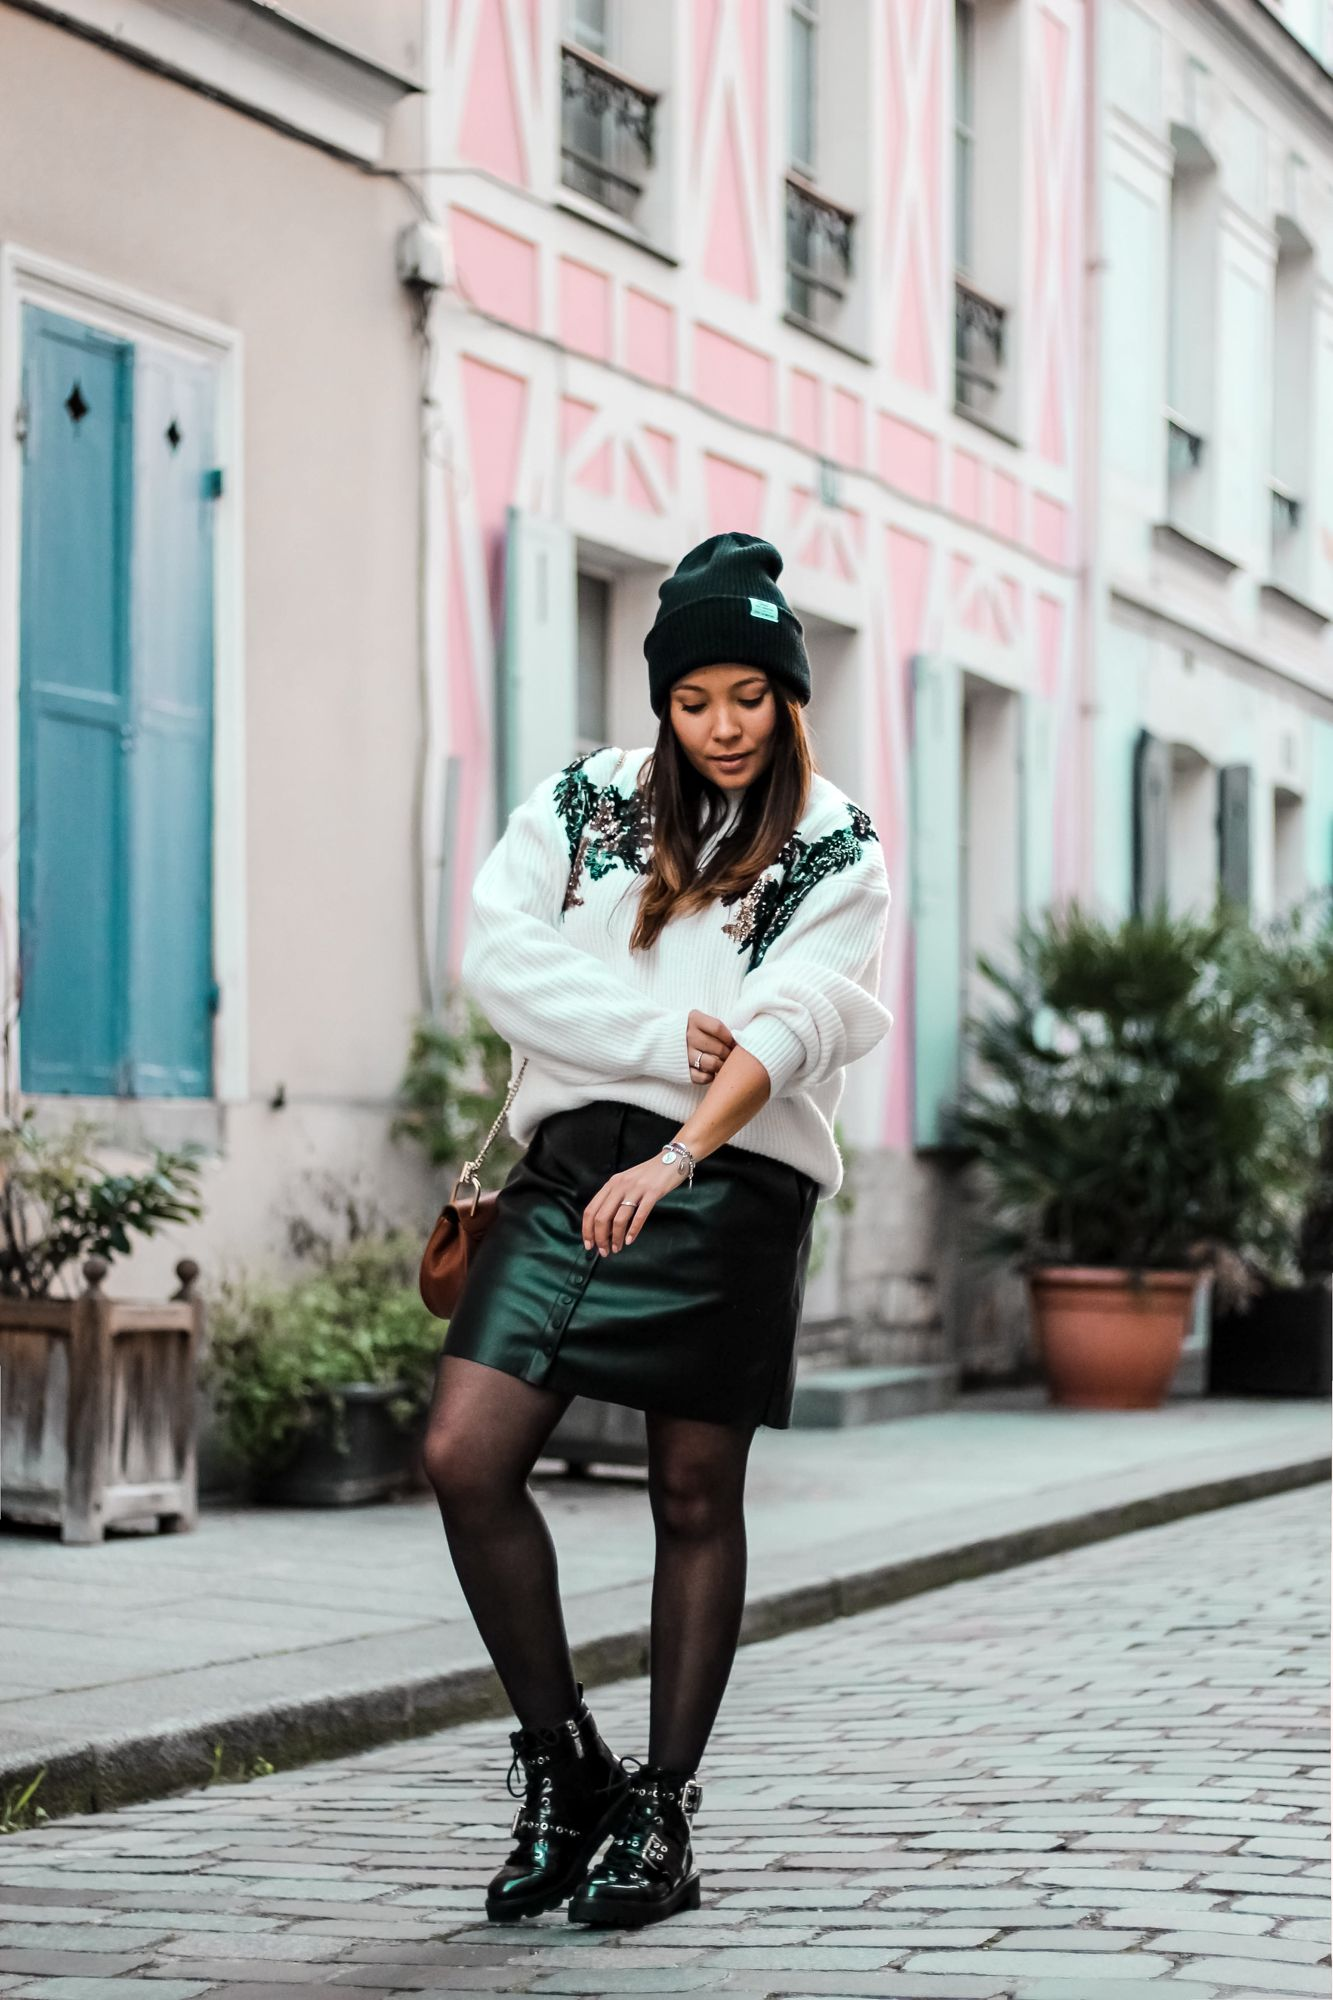 the green ananas, blog mode, blogueuse mode, h&m, hm, pull hm, jupe simili cuir, zara, bonnet acne, boots femme, sac inspi chloé, rue crémieux, rue colorées paris, shine, bershka